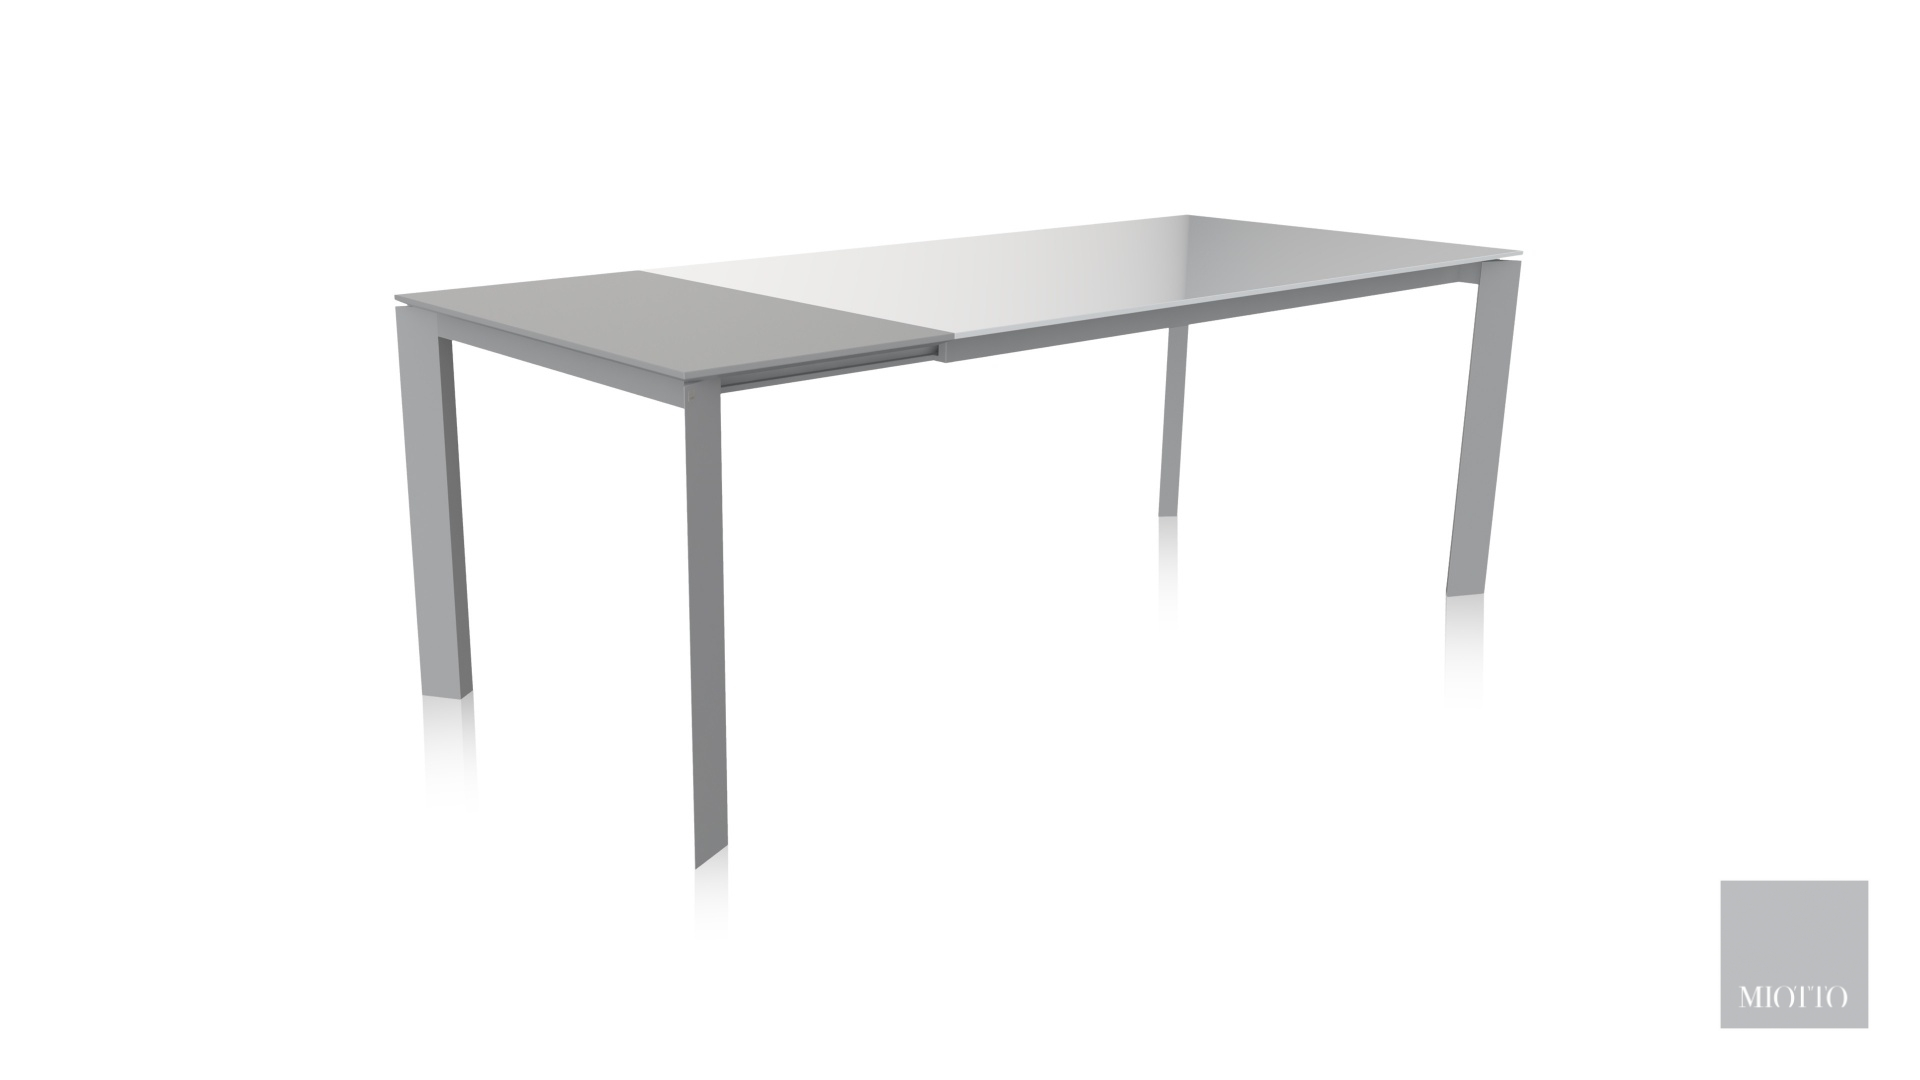 miotto_adotto DT T grey open2 miotto dining table